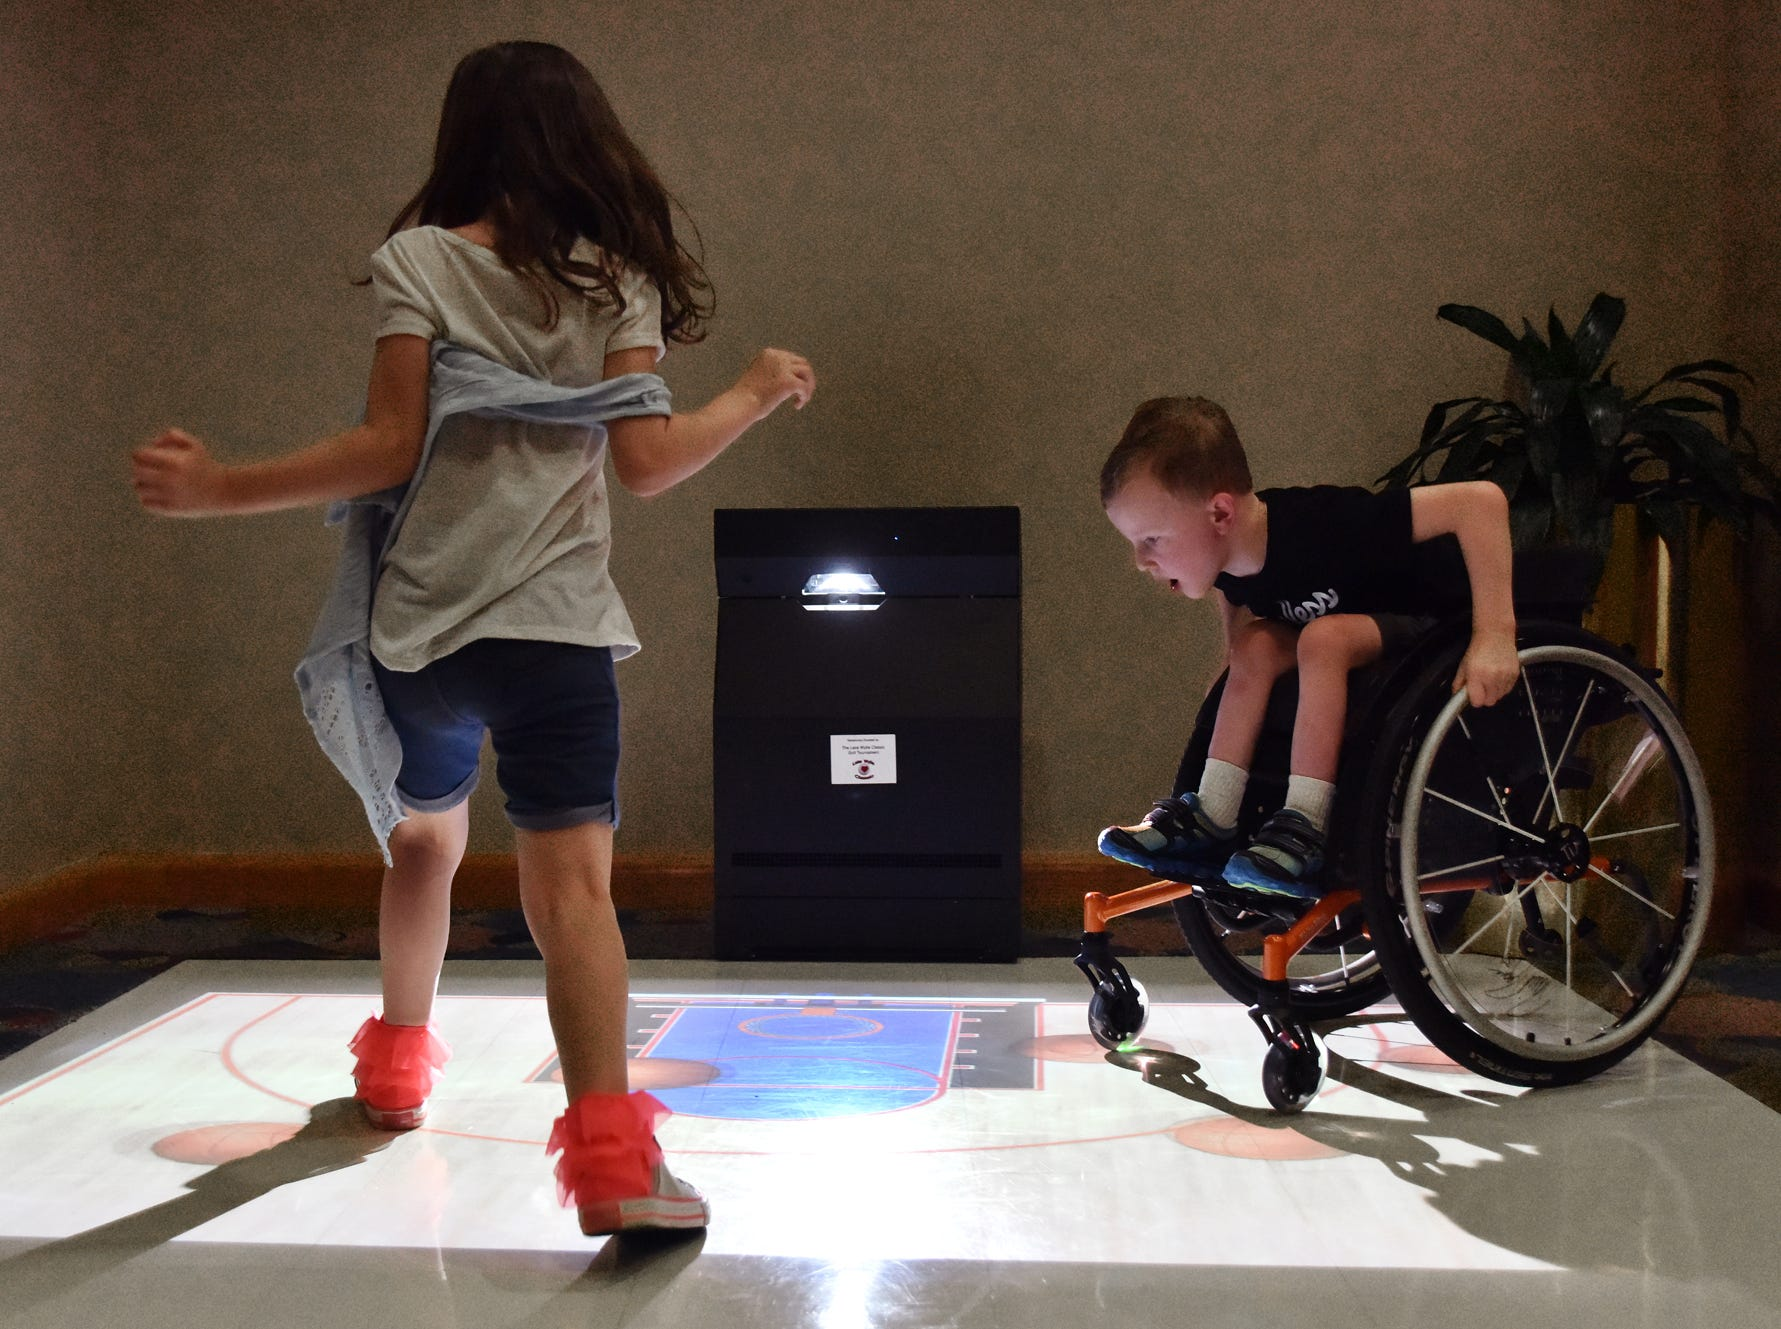 Wyatt Banks, 5, right, and his sister Austin, 7, play on an interactive floor at the Shriners Hospital for Children in Greenville on August 15, 2018.